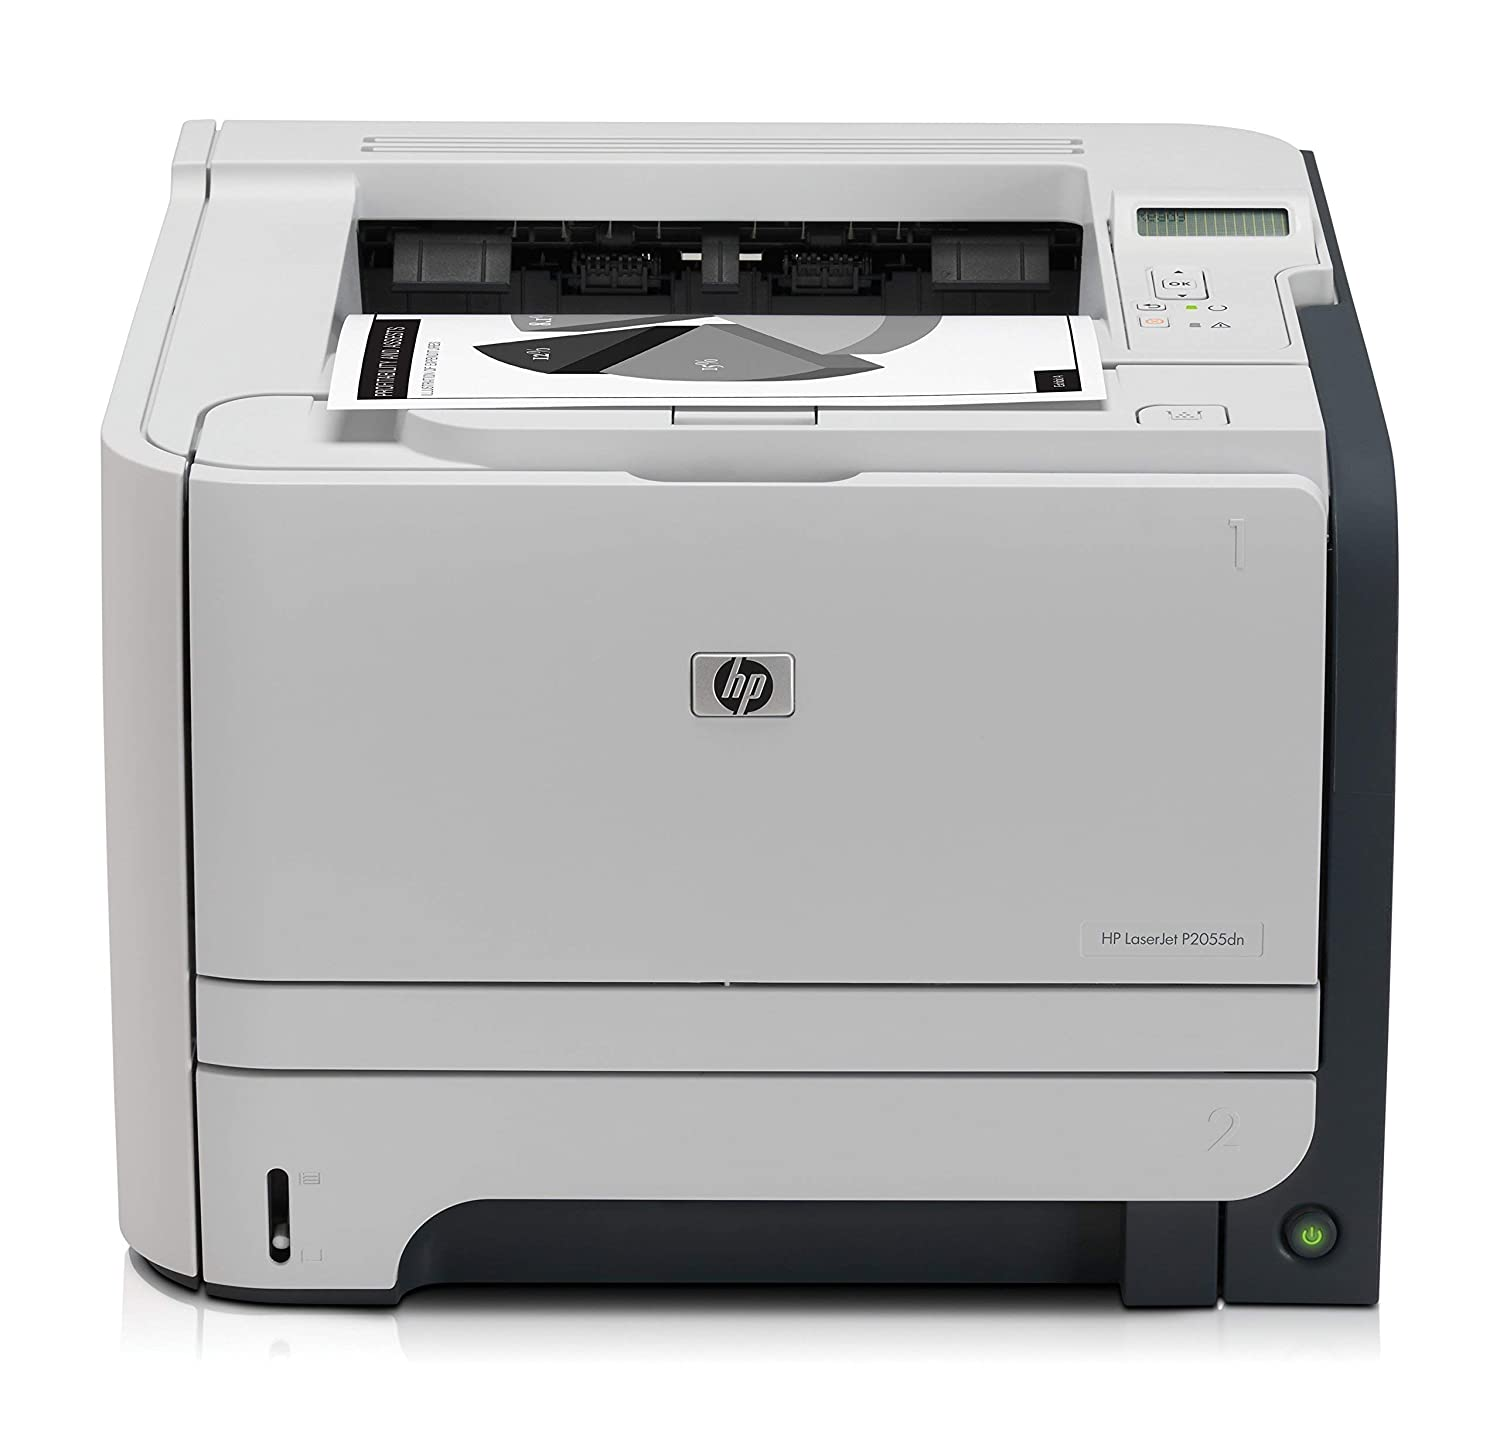 Amazon.com: HP LaserJet P2055DN Workgroup impresora láser ...